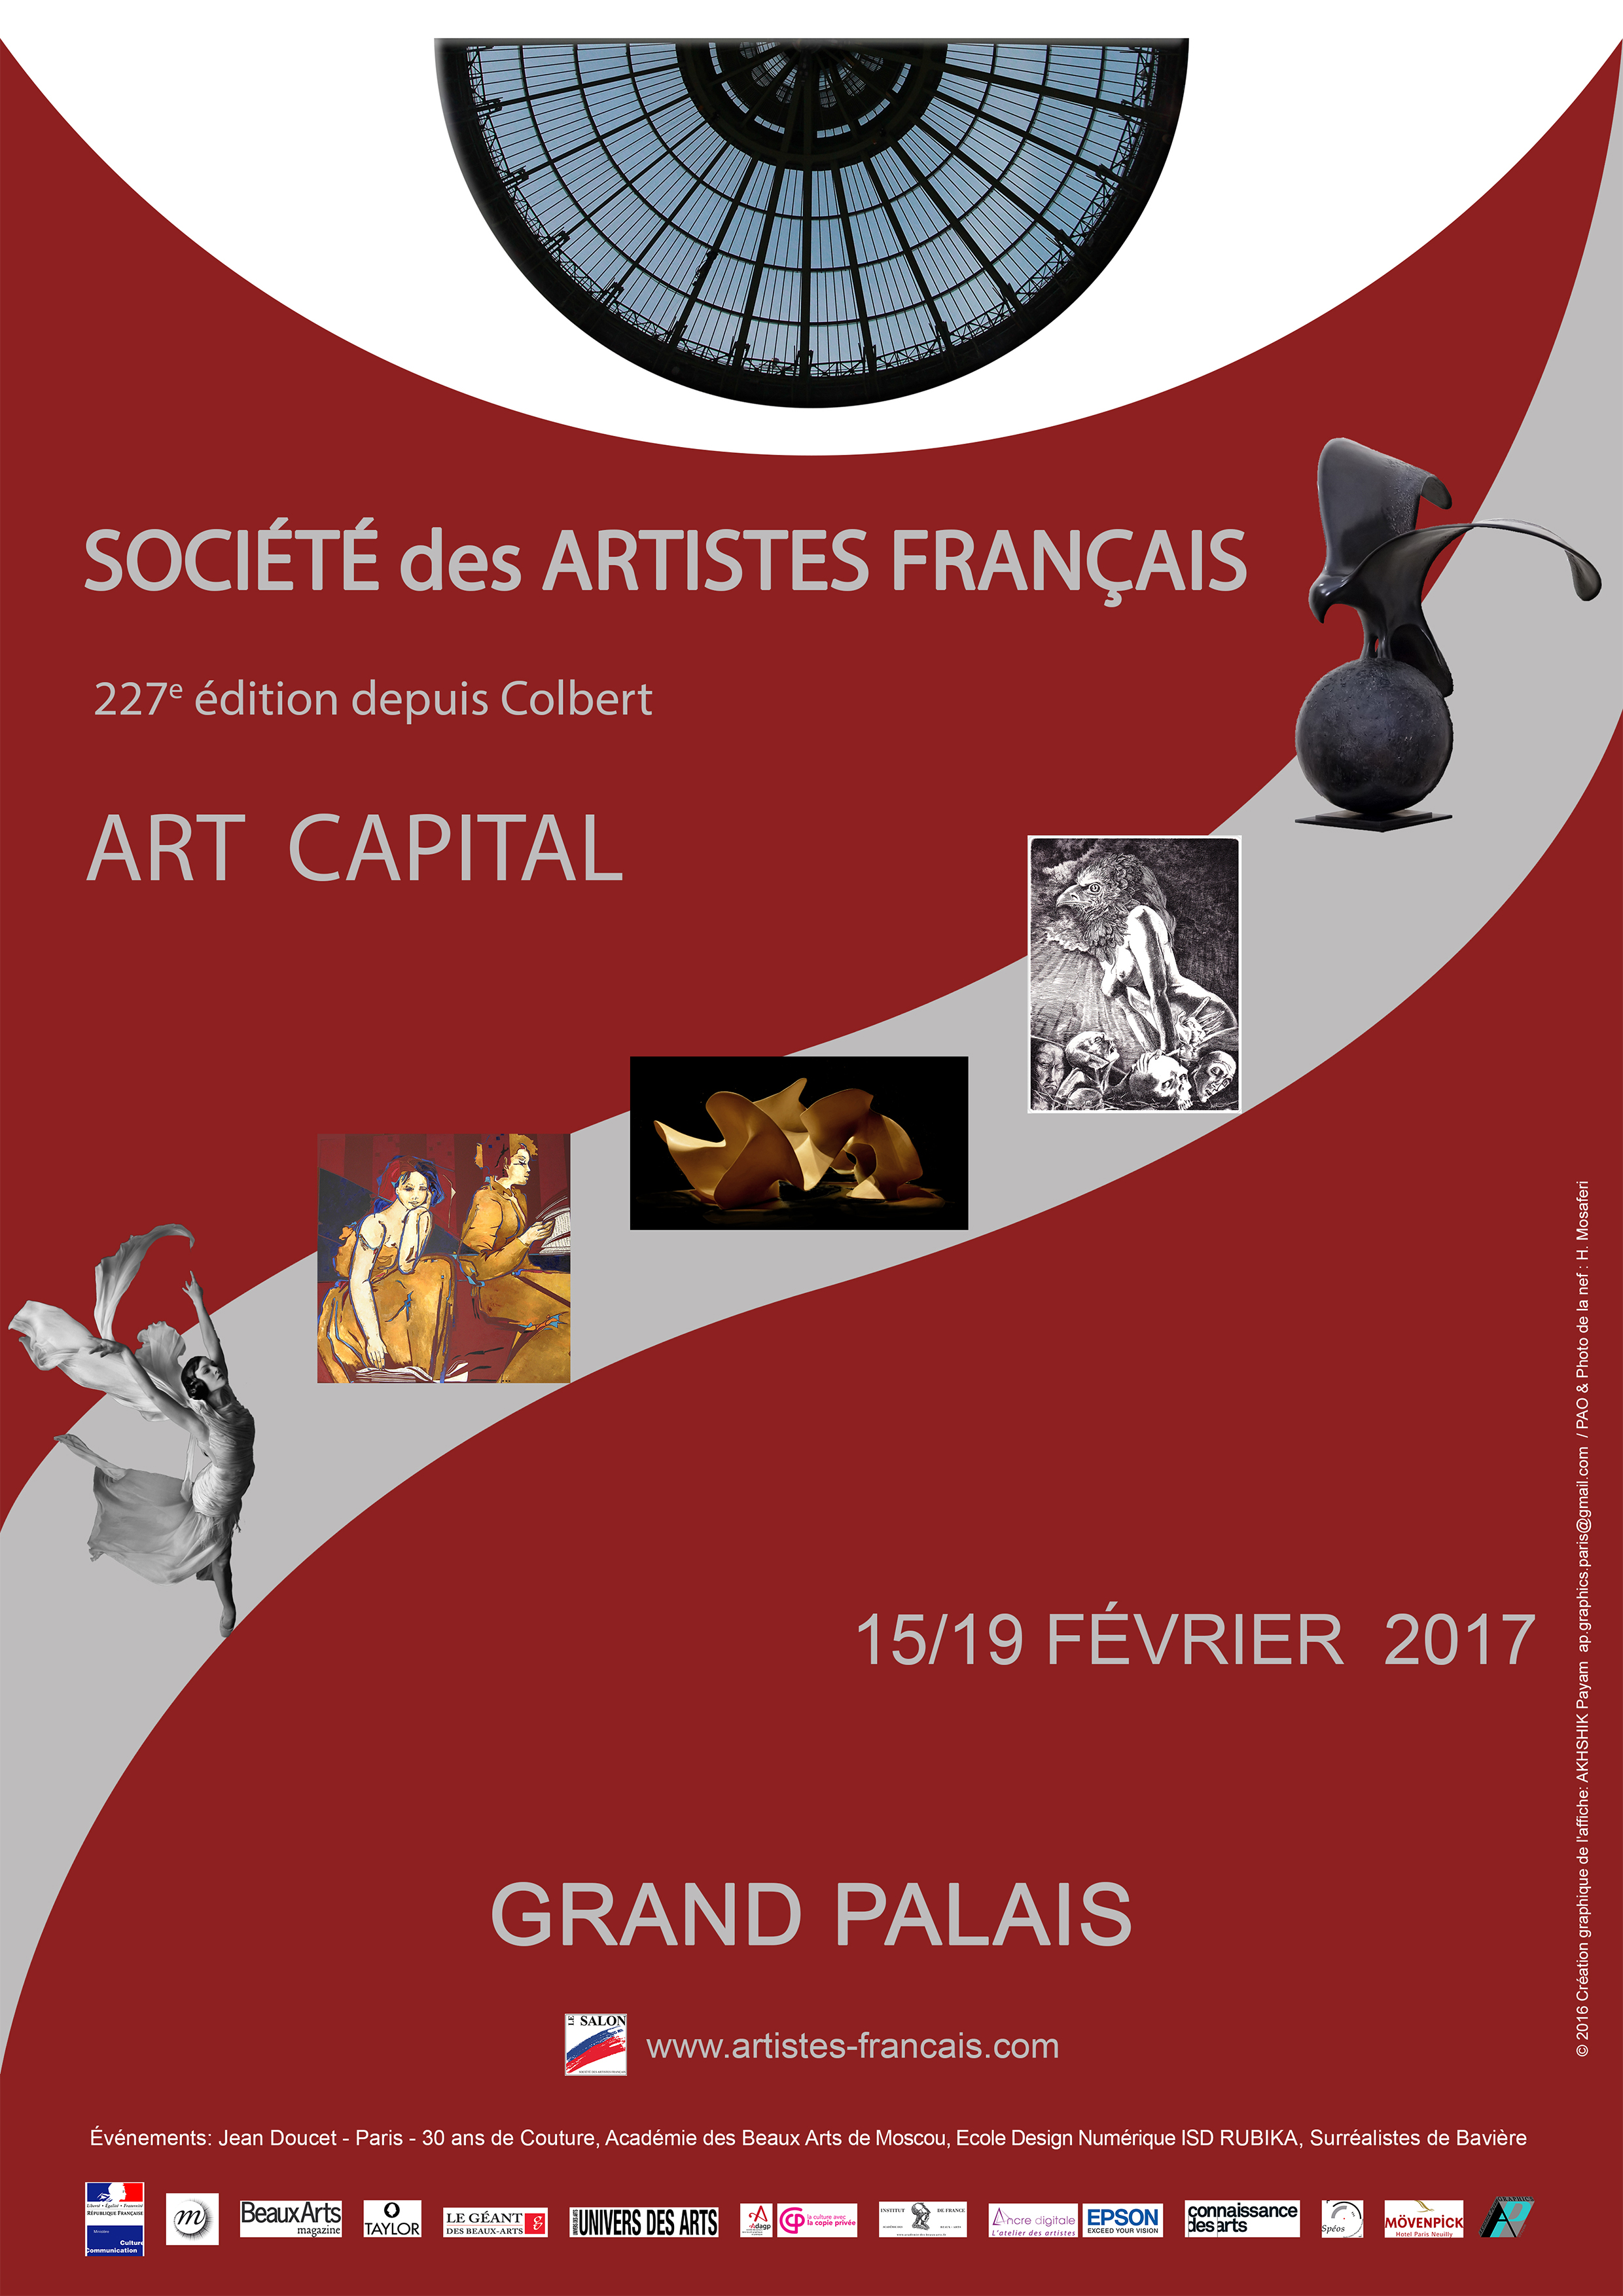 Le salon des artistes fran ais du 15 au 19 f vrier 2017 au for Salon de l orientation paris 2017